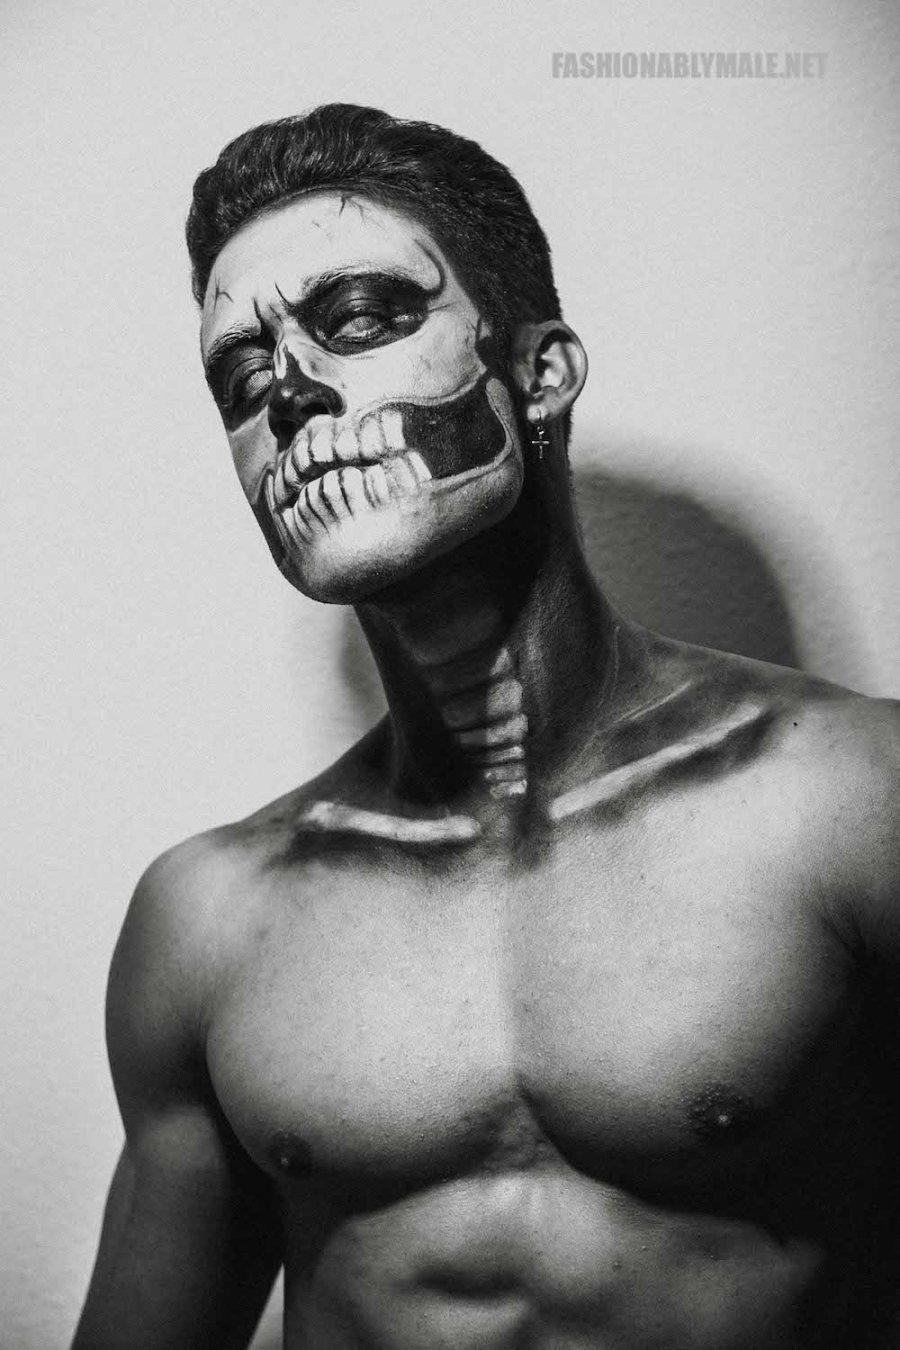 Halloween Skull Boy Borja by Jose Martinez3